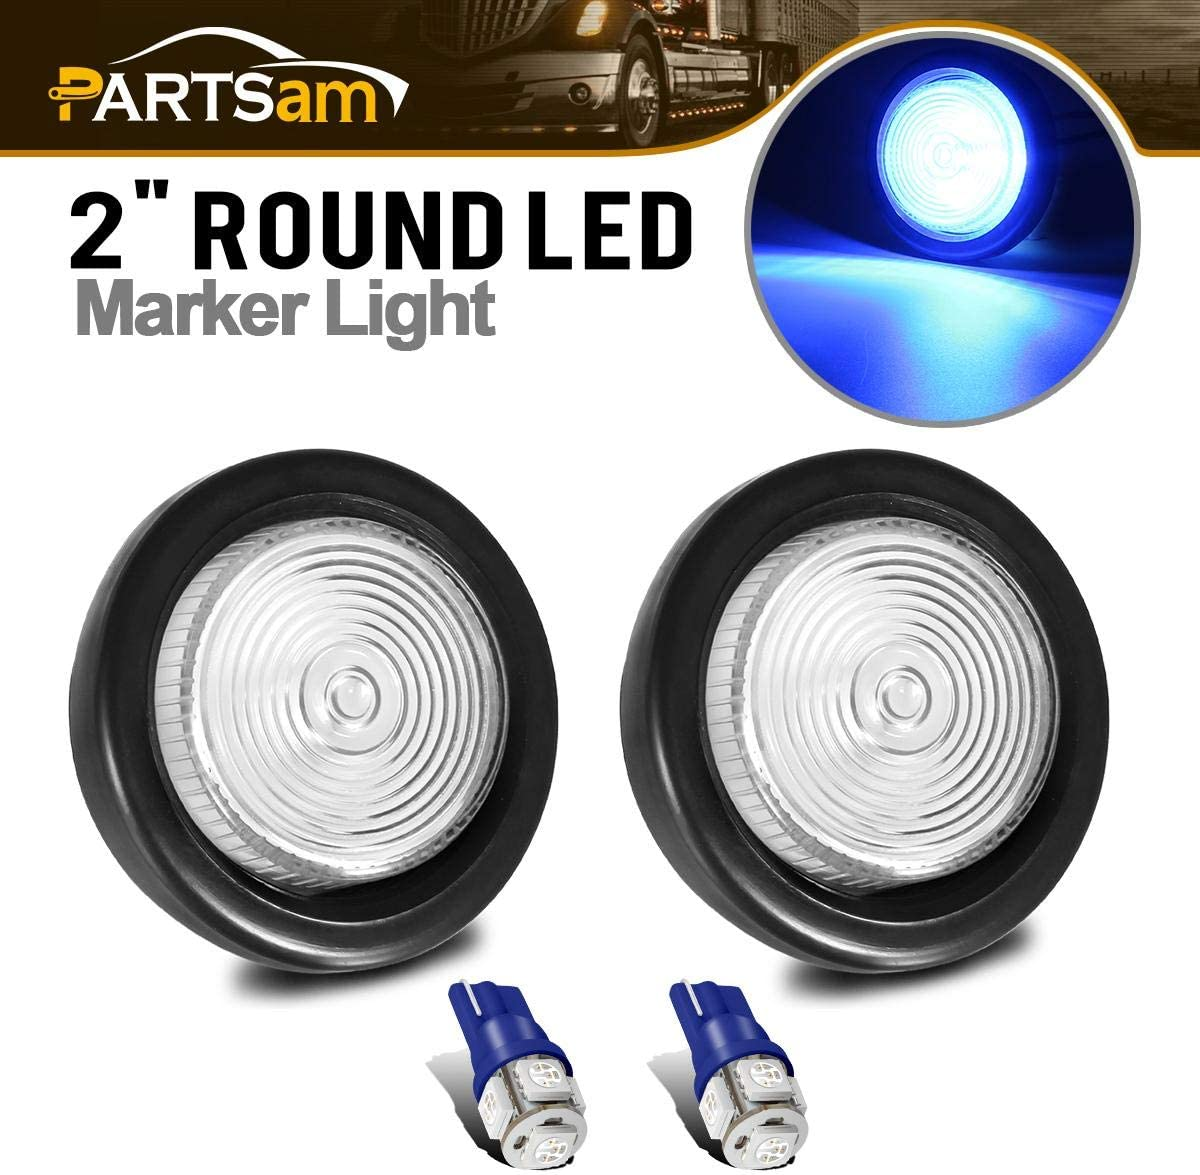 Partsam 2Pcs 2 Inch Round Side Marker Light Lamps Clear Replacement Lens w// T10 Replacement Plug Sockets Extended Wiring Harness Pigtail T10 194 168 W5W Blue 5-5050-SMD Led Bulbs